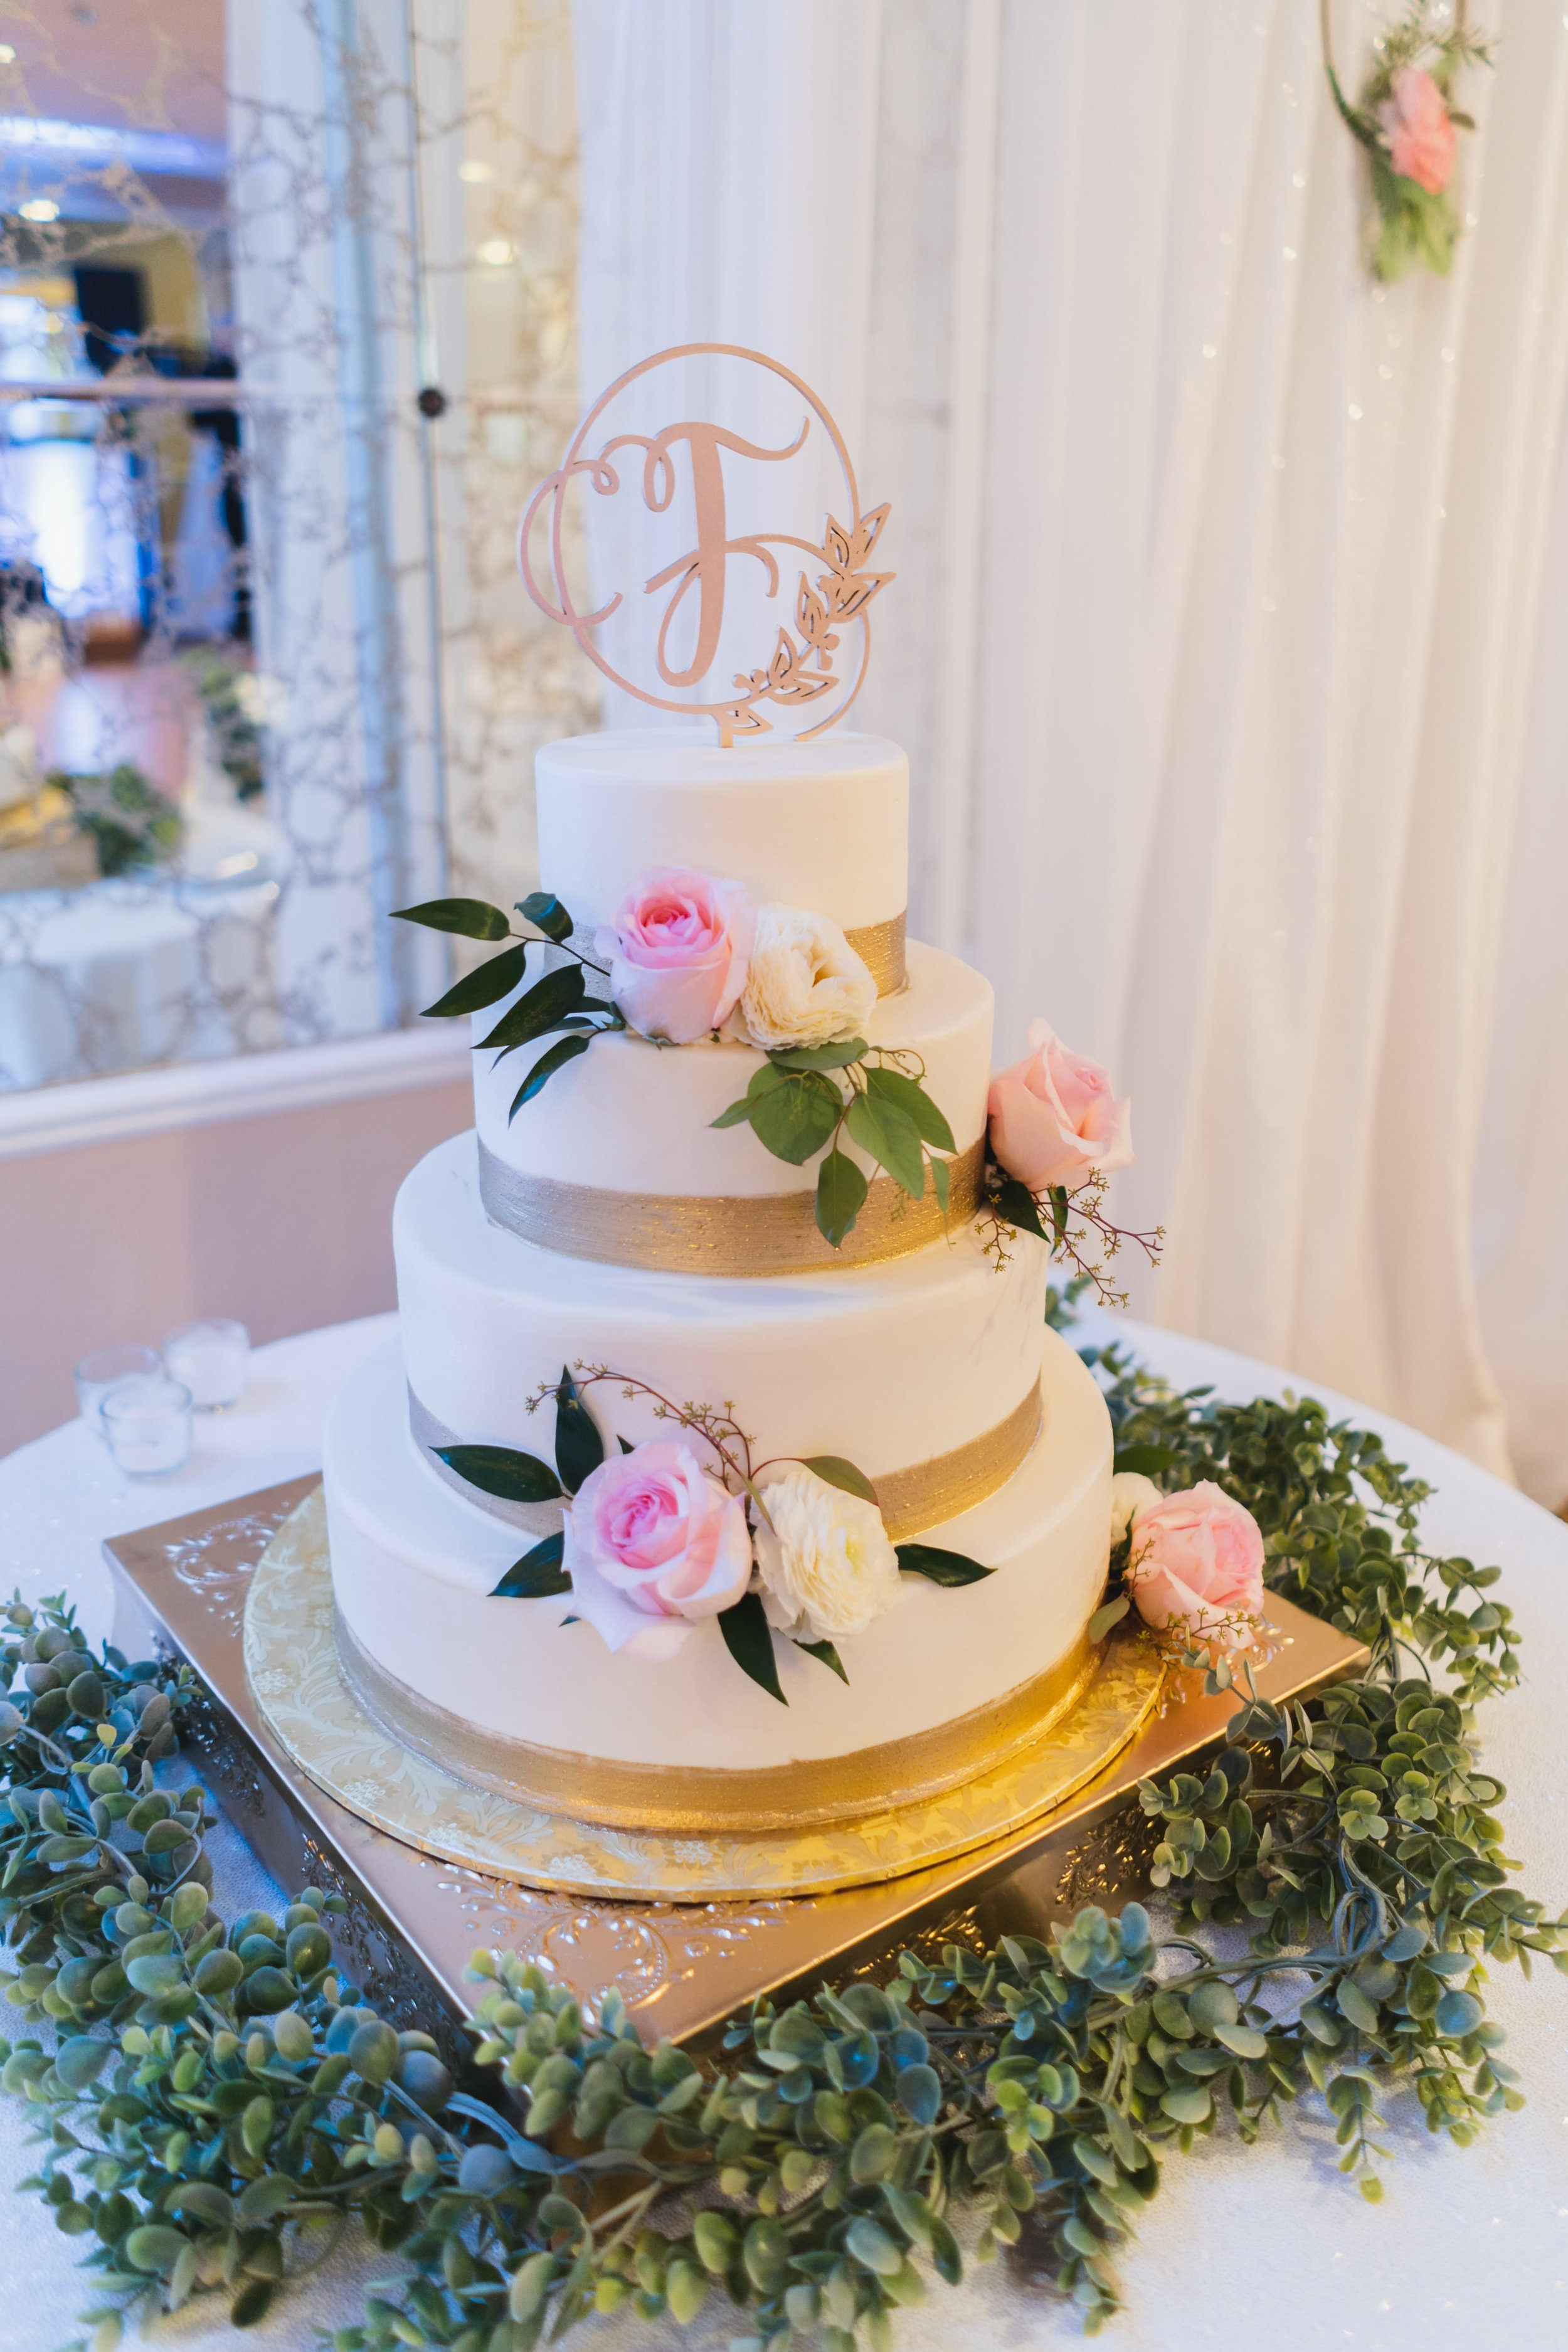 A white wedding cake adorned with pink and white roses.